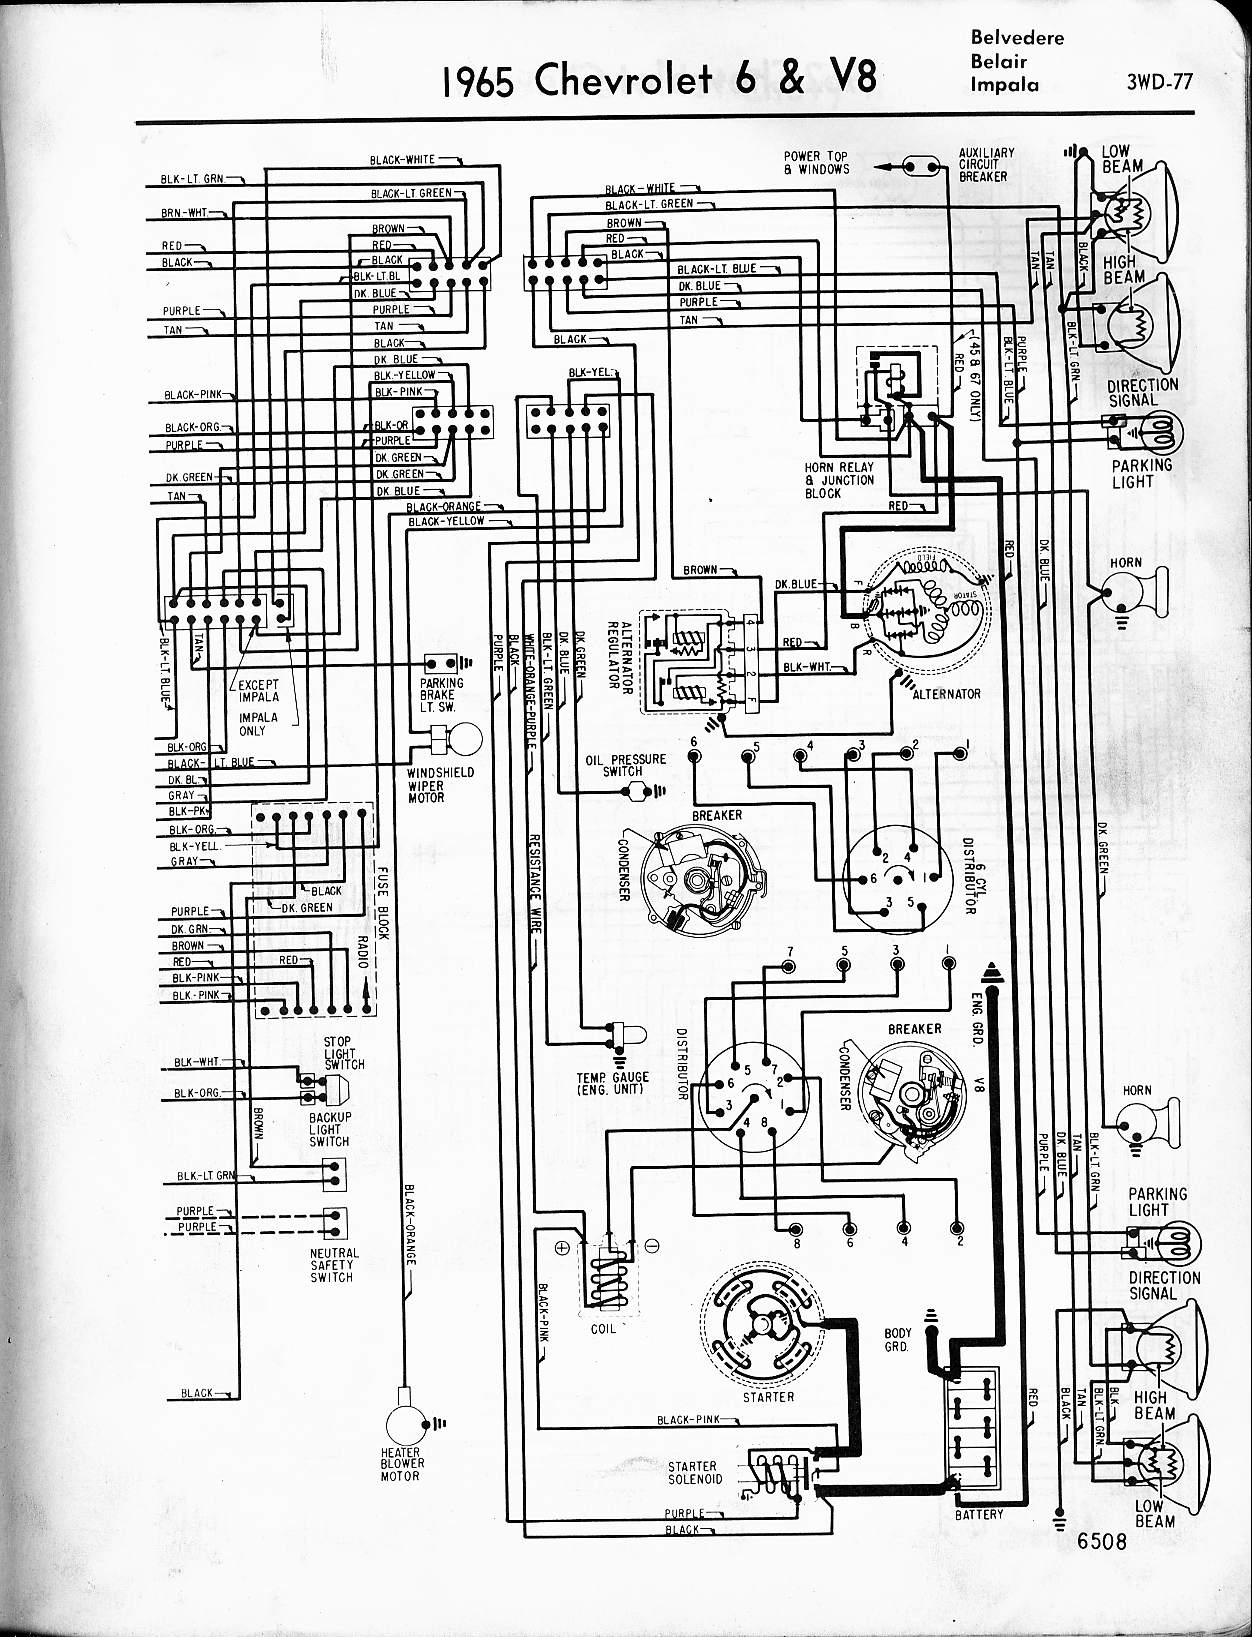 plc schematic diagram with How To on Electrical Symbols also Carrier Ac Wiring Diagrams as well Full likewise How to moreover Amf Control Panel Circuit Diagram Pdf.